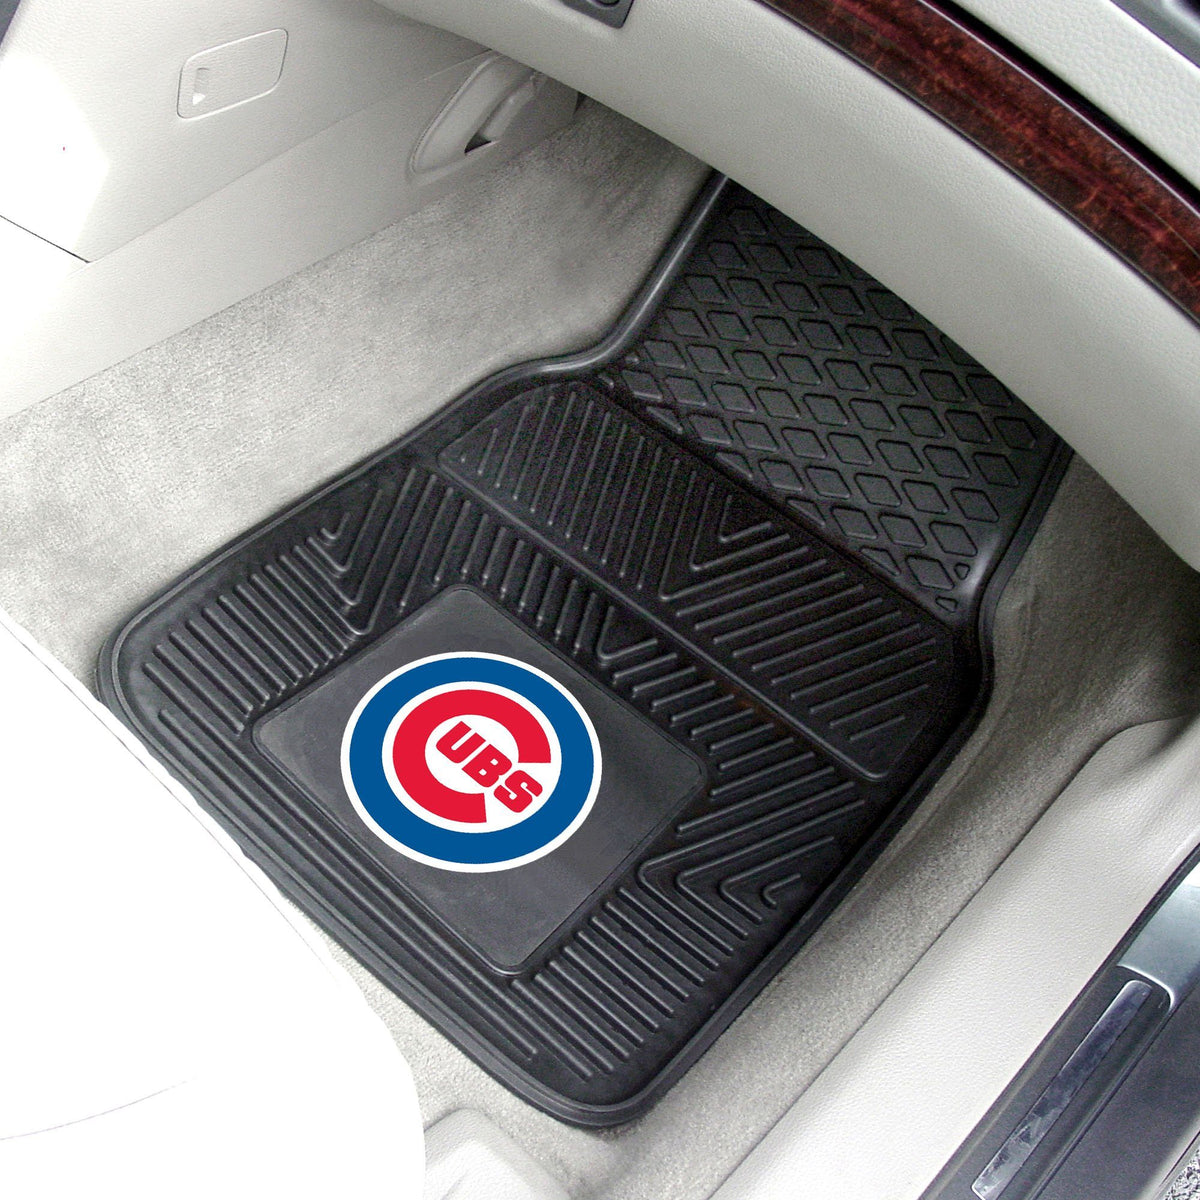 MLB - Vinyl Car Mat, 2-Piece Set MLB Mats, Front Car Mats, 2-pc Vinyl Car Mat Set, MLB, Auto Fan Mats Chicago Cubs